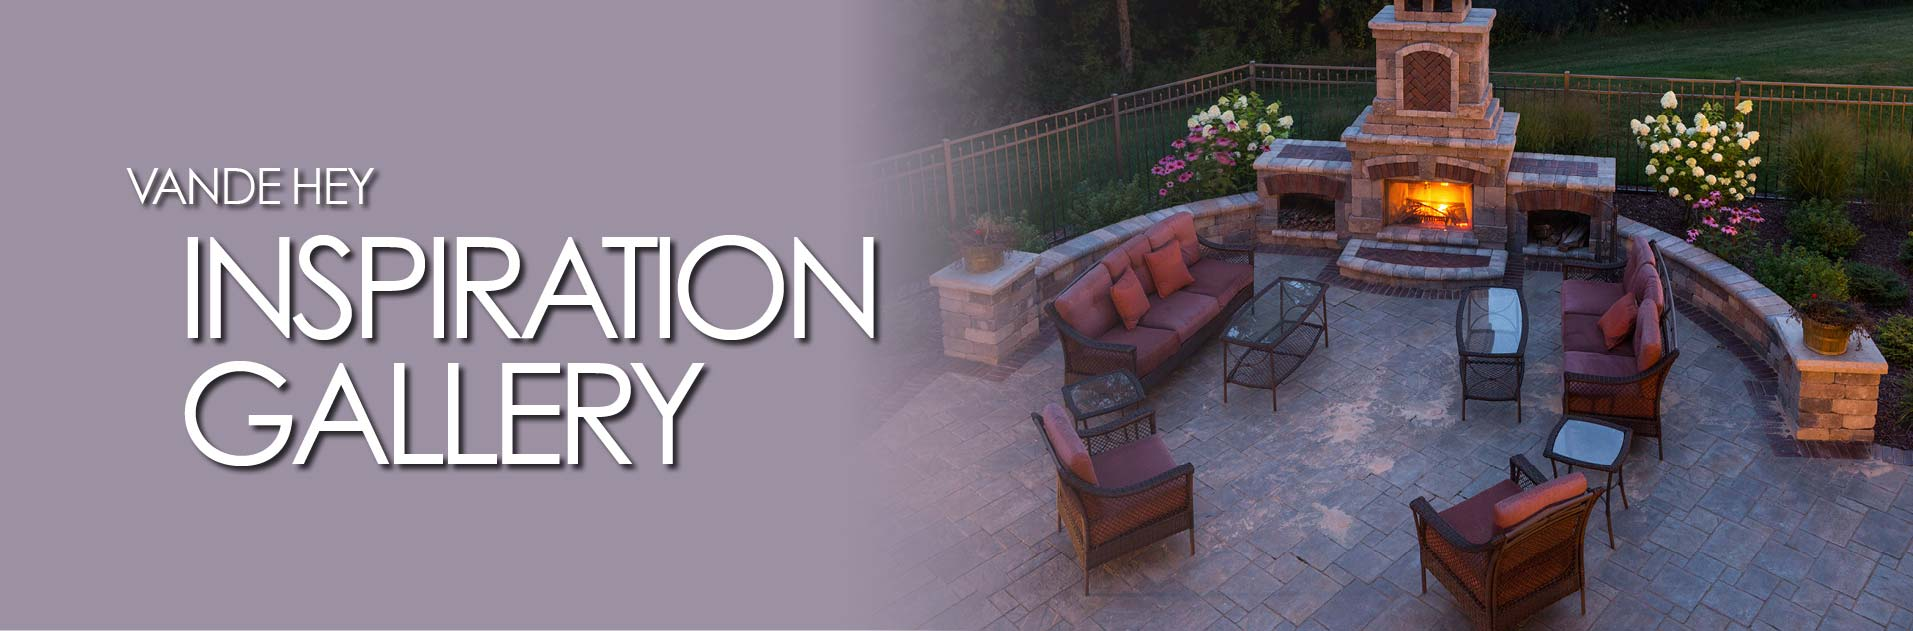 Landscaping Photo Galleries and Inspiration in Green Bay, WI